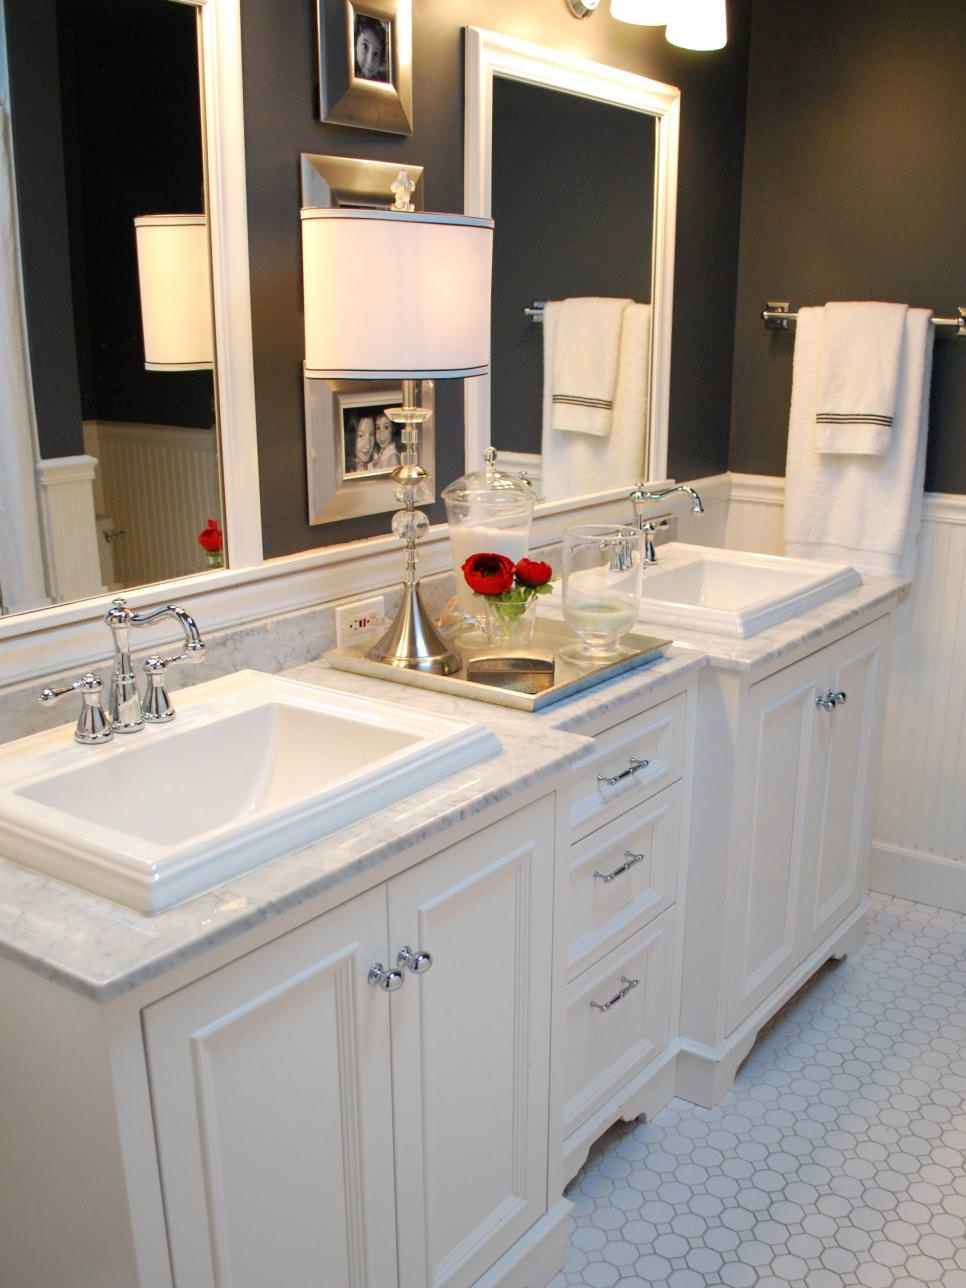 24 double bathroom vanity ideas bathroom designs for Trendy bathroom ideas